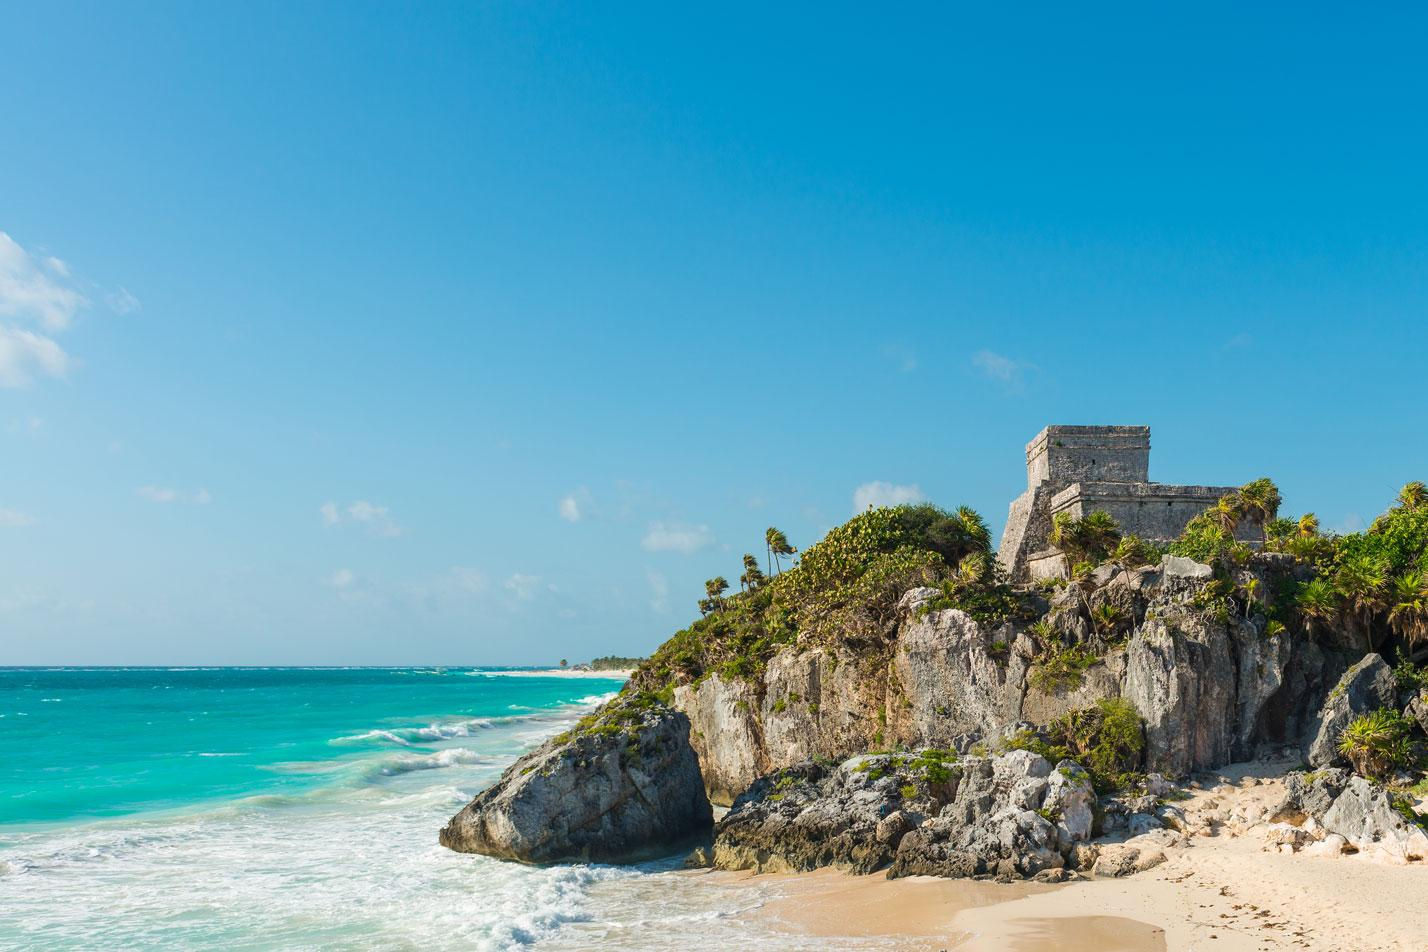 Beach in Tulum, Mexico